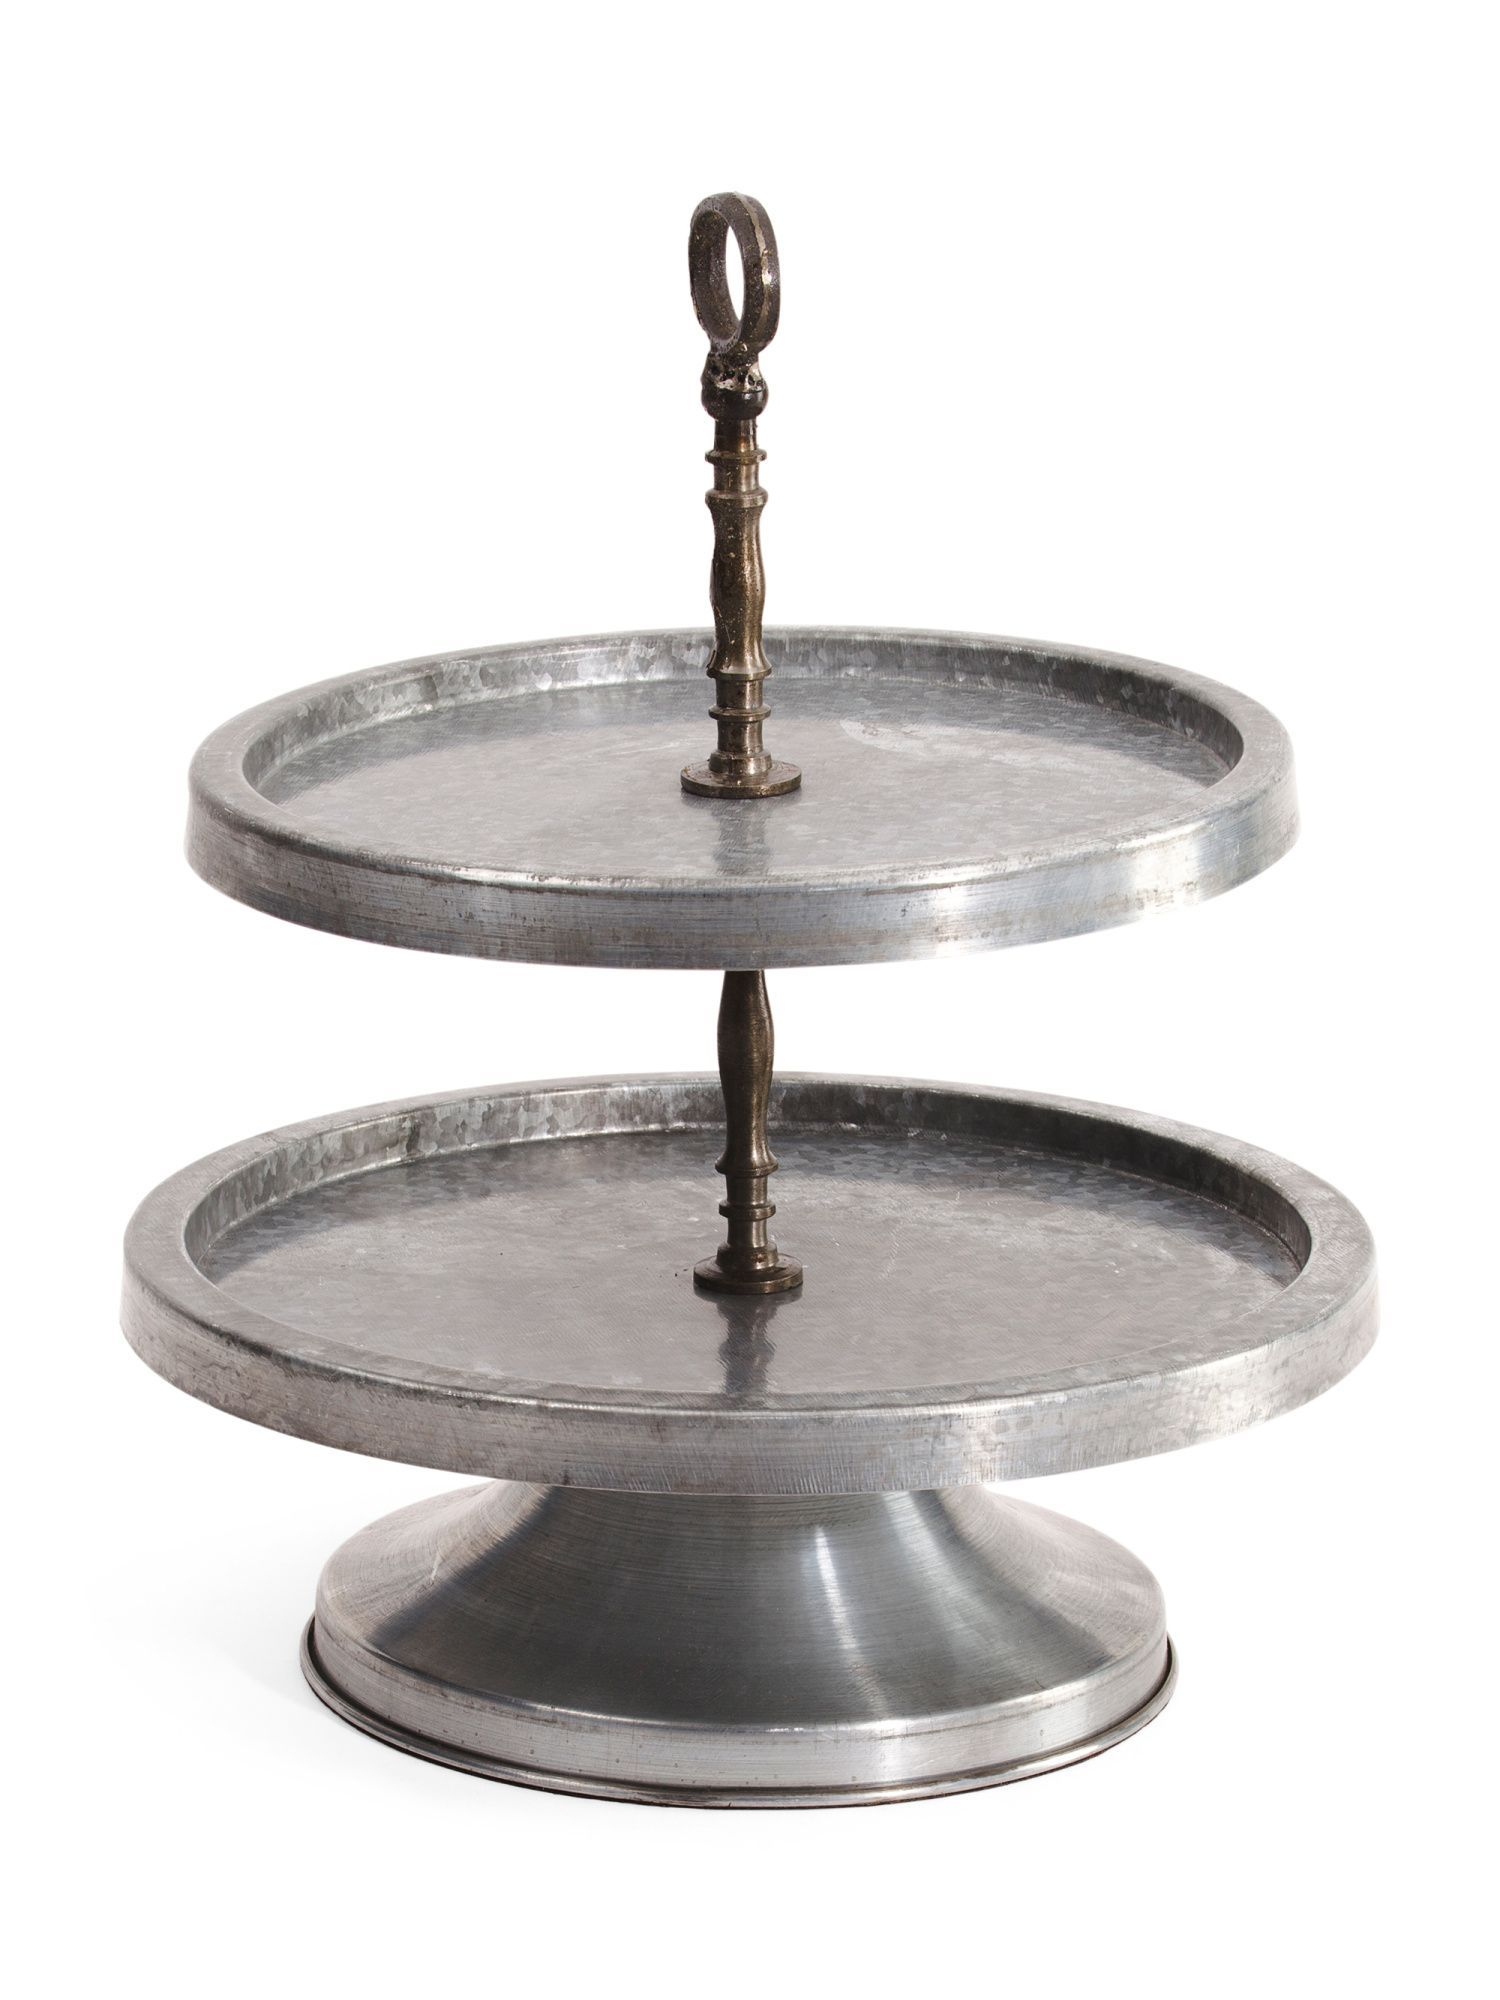 Made In India Metal 2 Tier Tray On Stand   Products   Pinterest